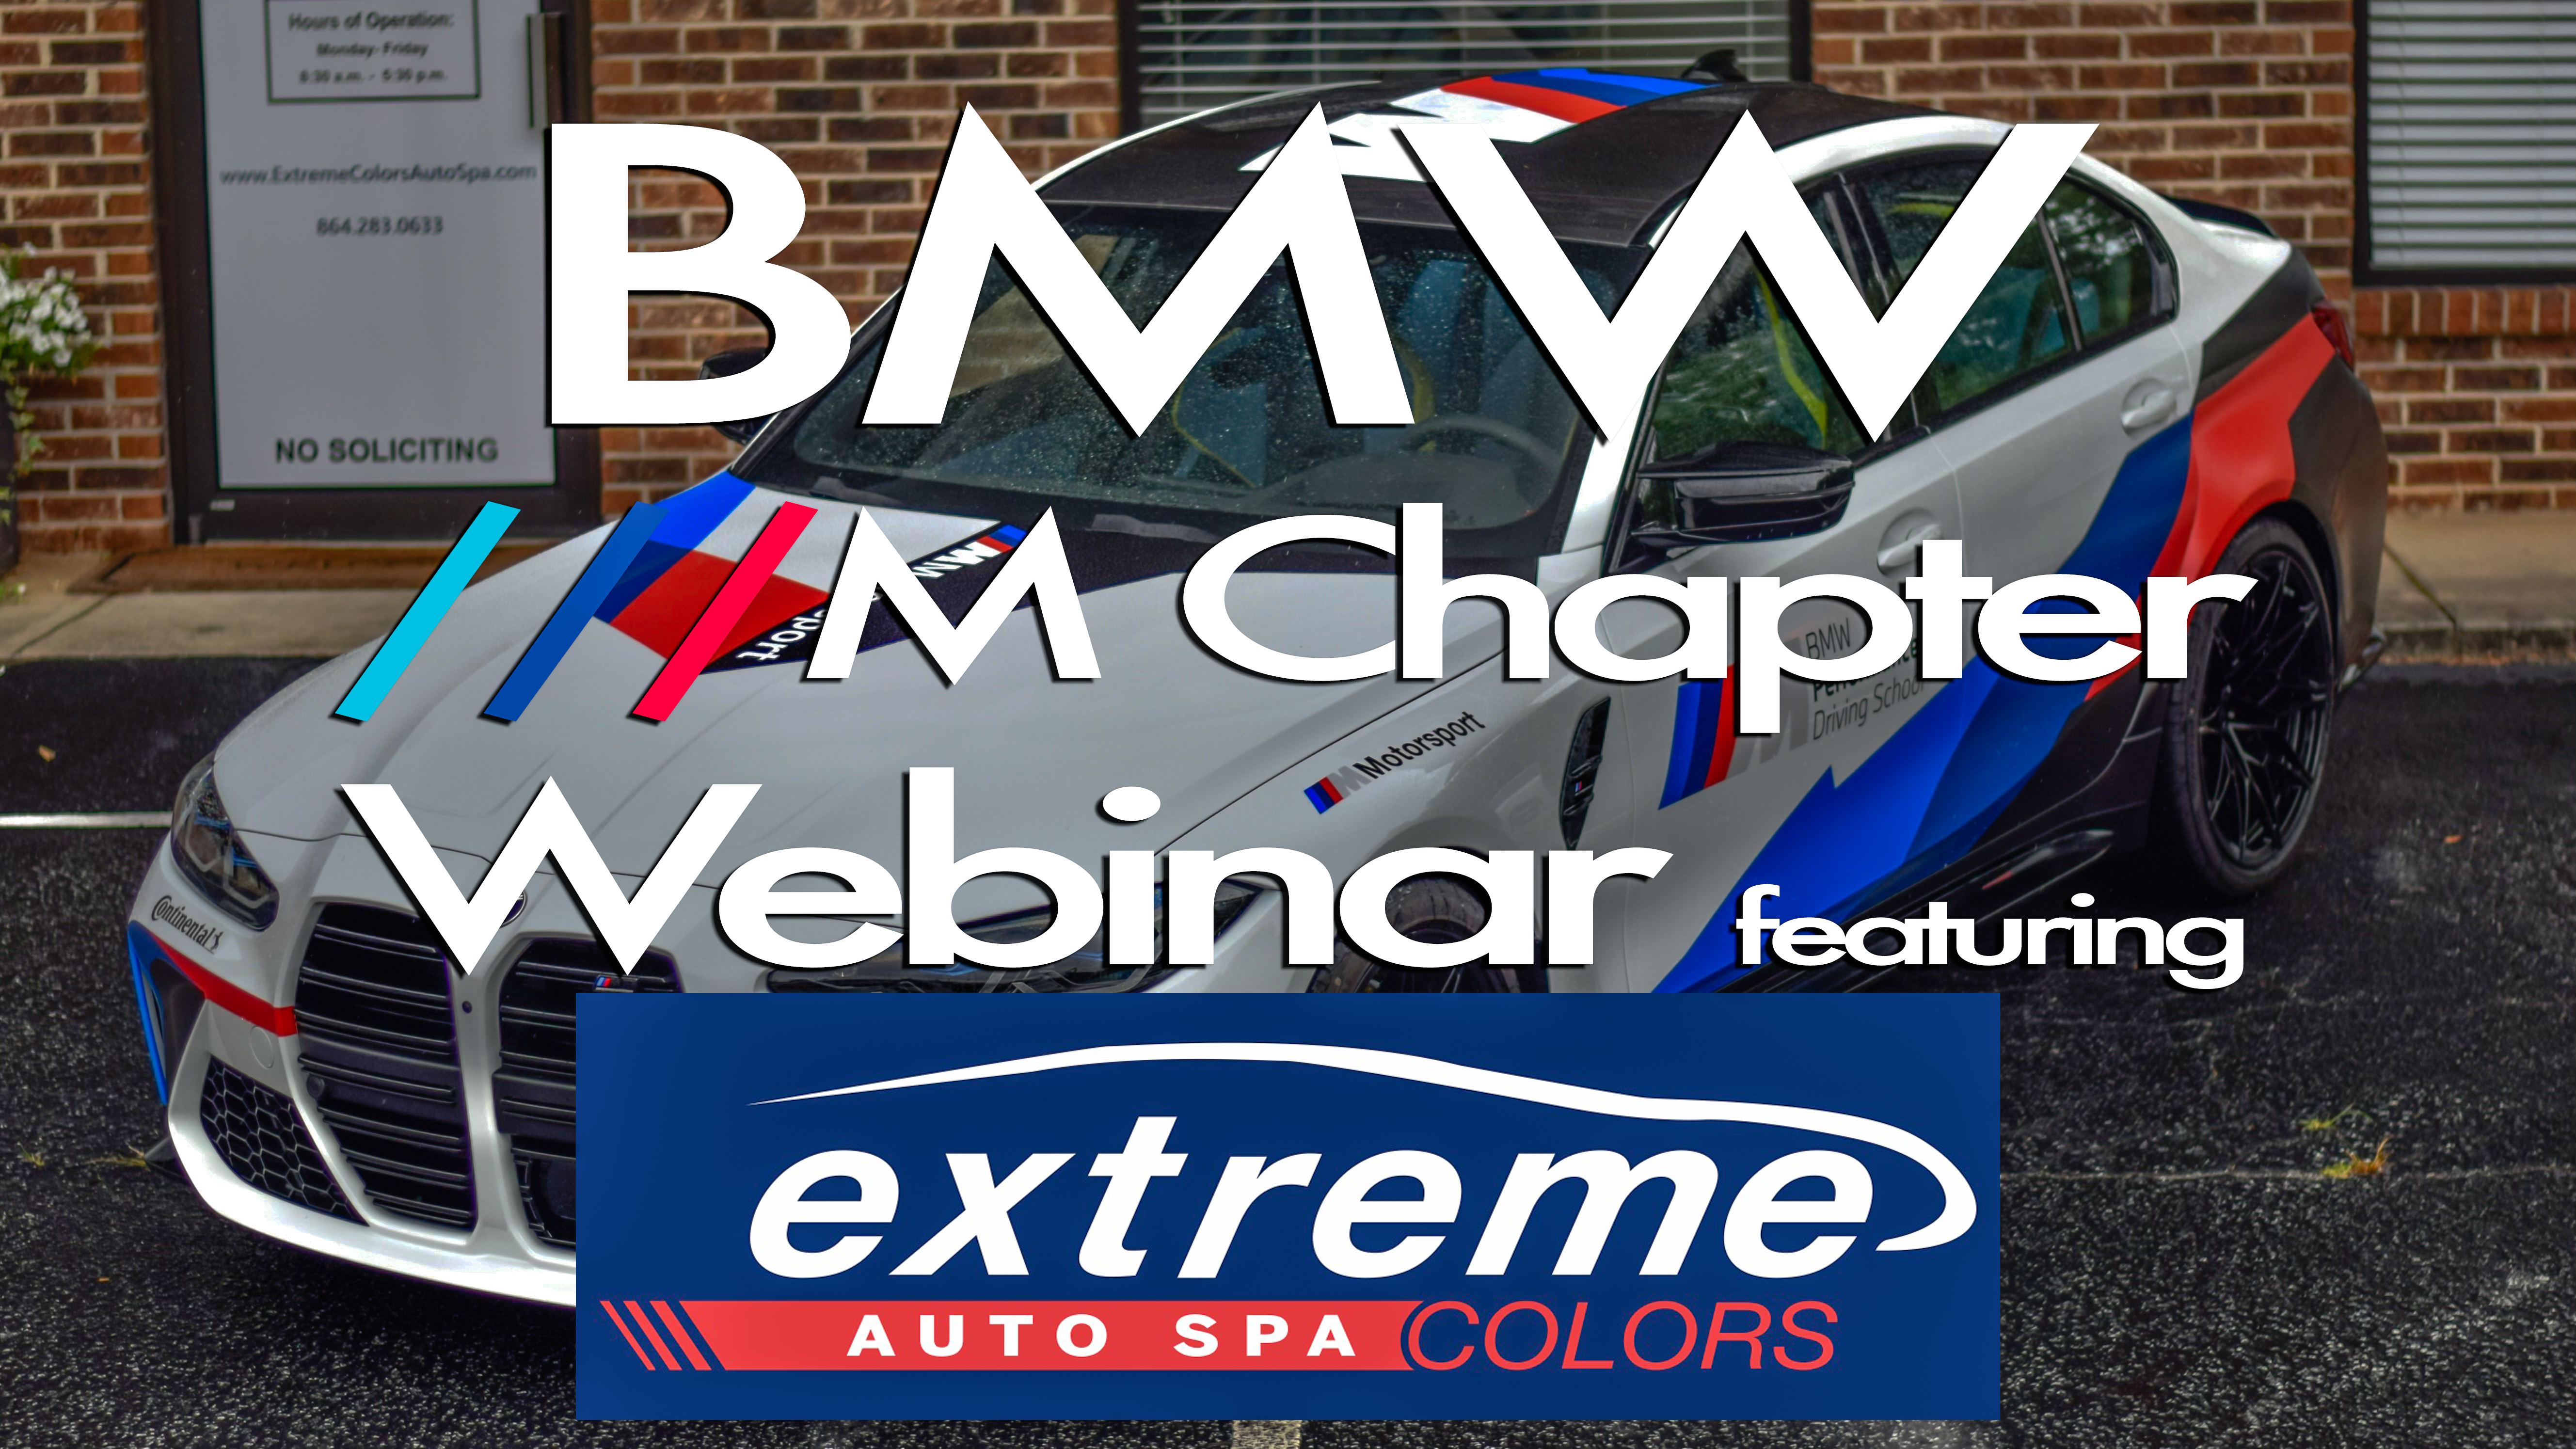 BMW CCA M Chapter Webinar featuring Extreme Colors Auto Spa